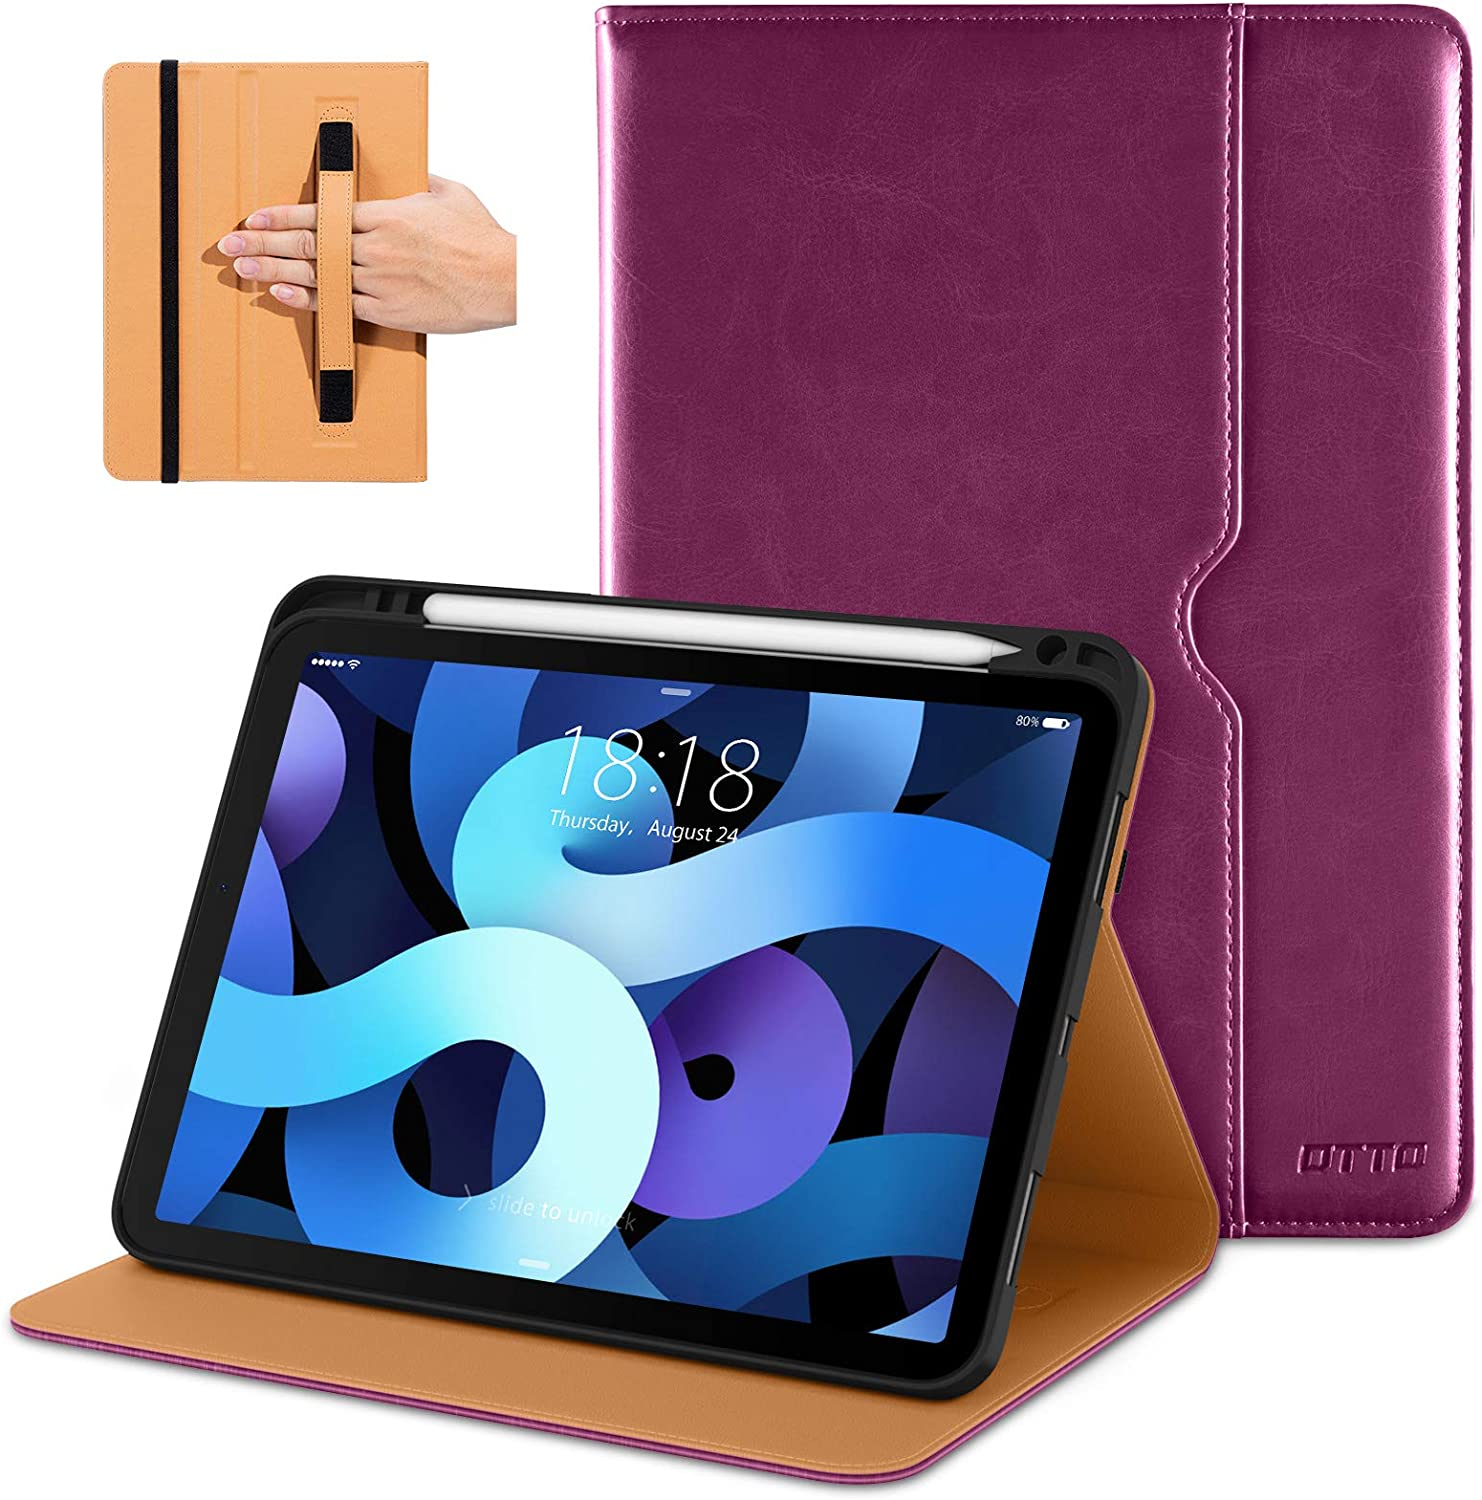 DTTO Compatible with iPad Air 4 Case, Premium Leather Business Folio Stand Cover with Built-in Apple Pencil Holder - Auto Wake/Sleep and Multiple Viewing Angles for iPad 10.9 Inch 2020, Purple